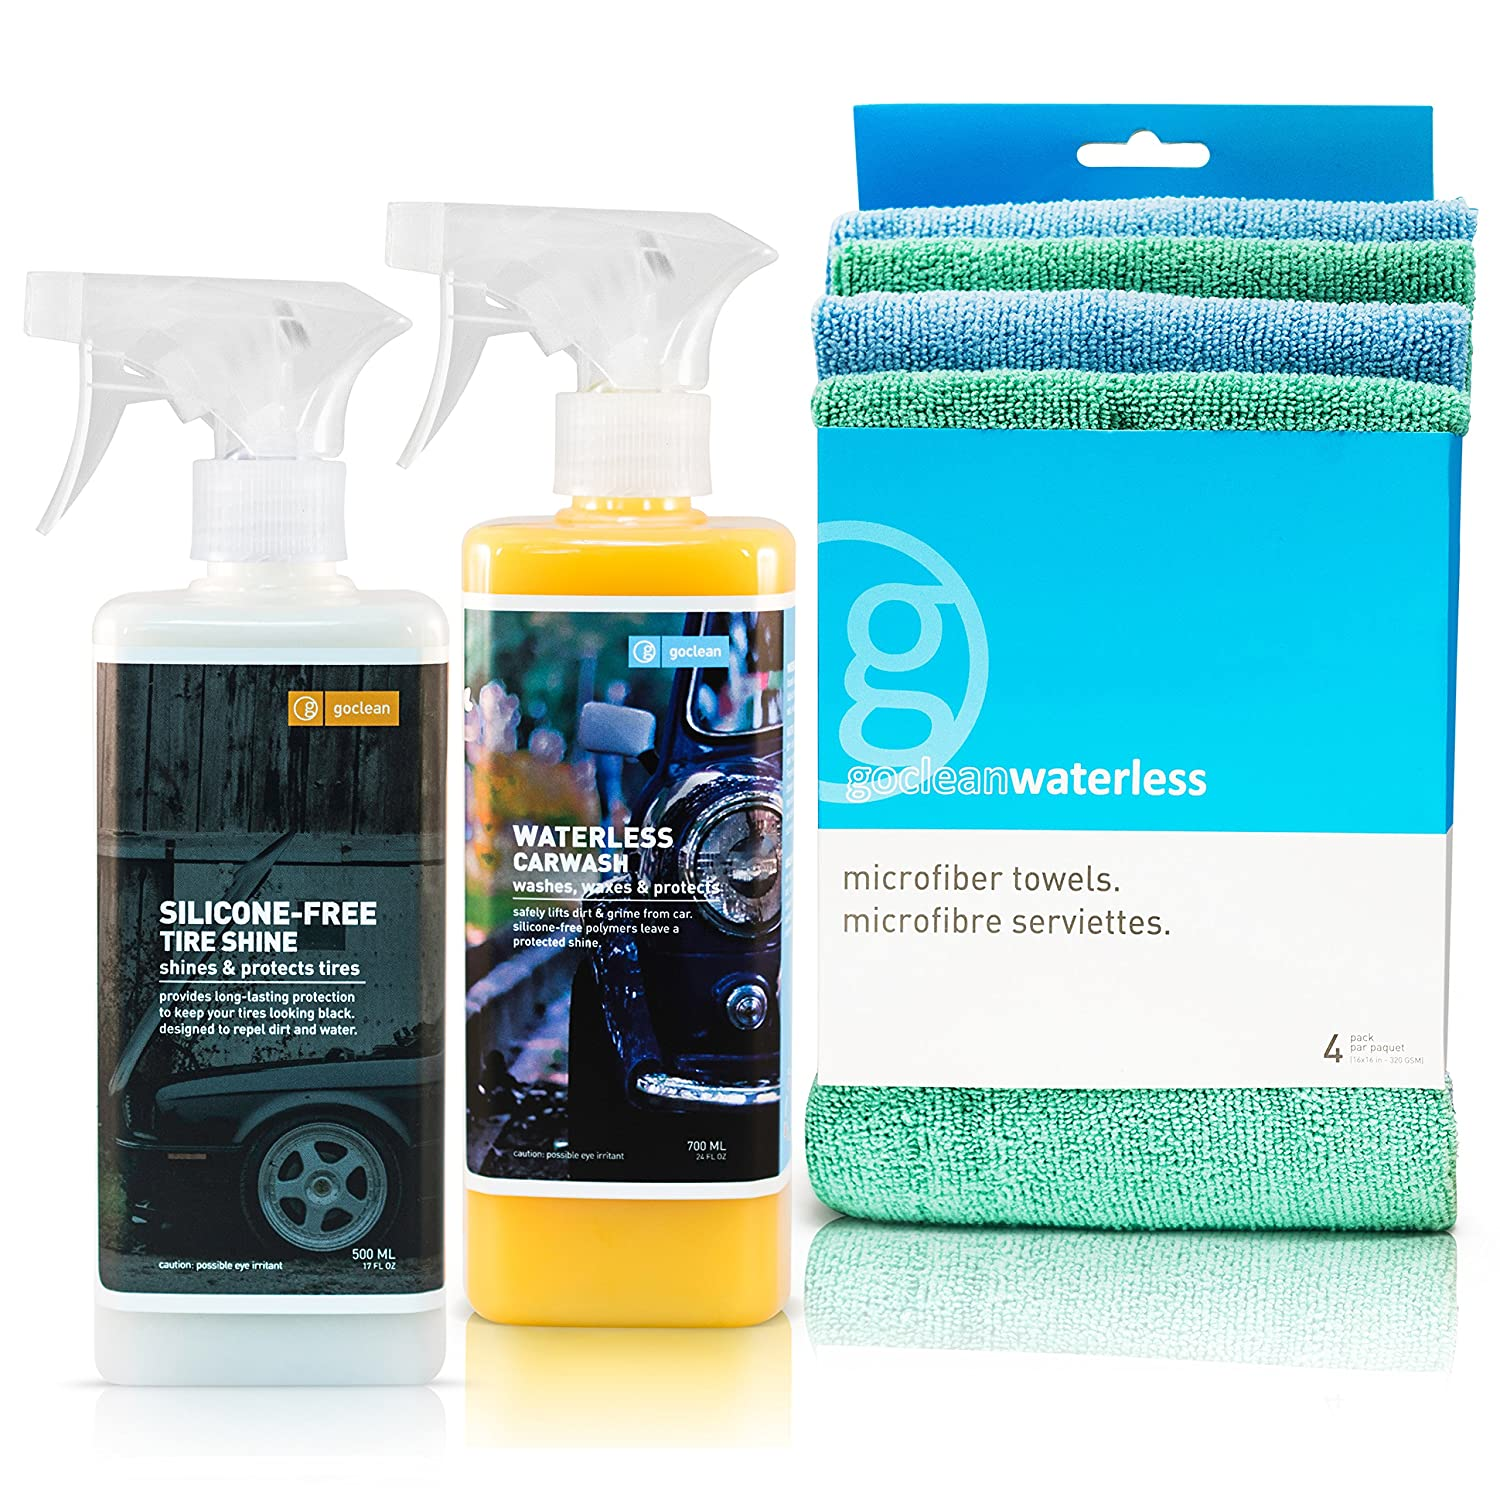 GOCLEAN 3pc EXTERIOR CAR CARE KIT | CAR WASH KIT | Waterless Car Wash & Silicone Free Tire Shine | For That Brilliant Car Show Finish & Clean New Tire Look | Turn Heads & Get Looks With The Commercial Grade Detailing Results With Our Car Cleaning Kit | Goc